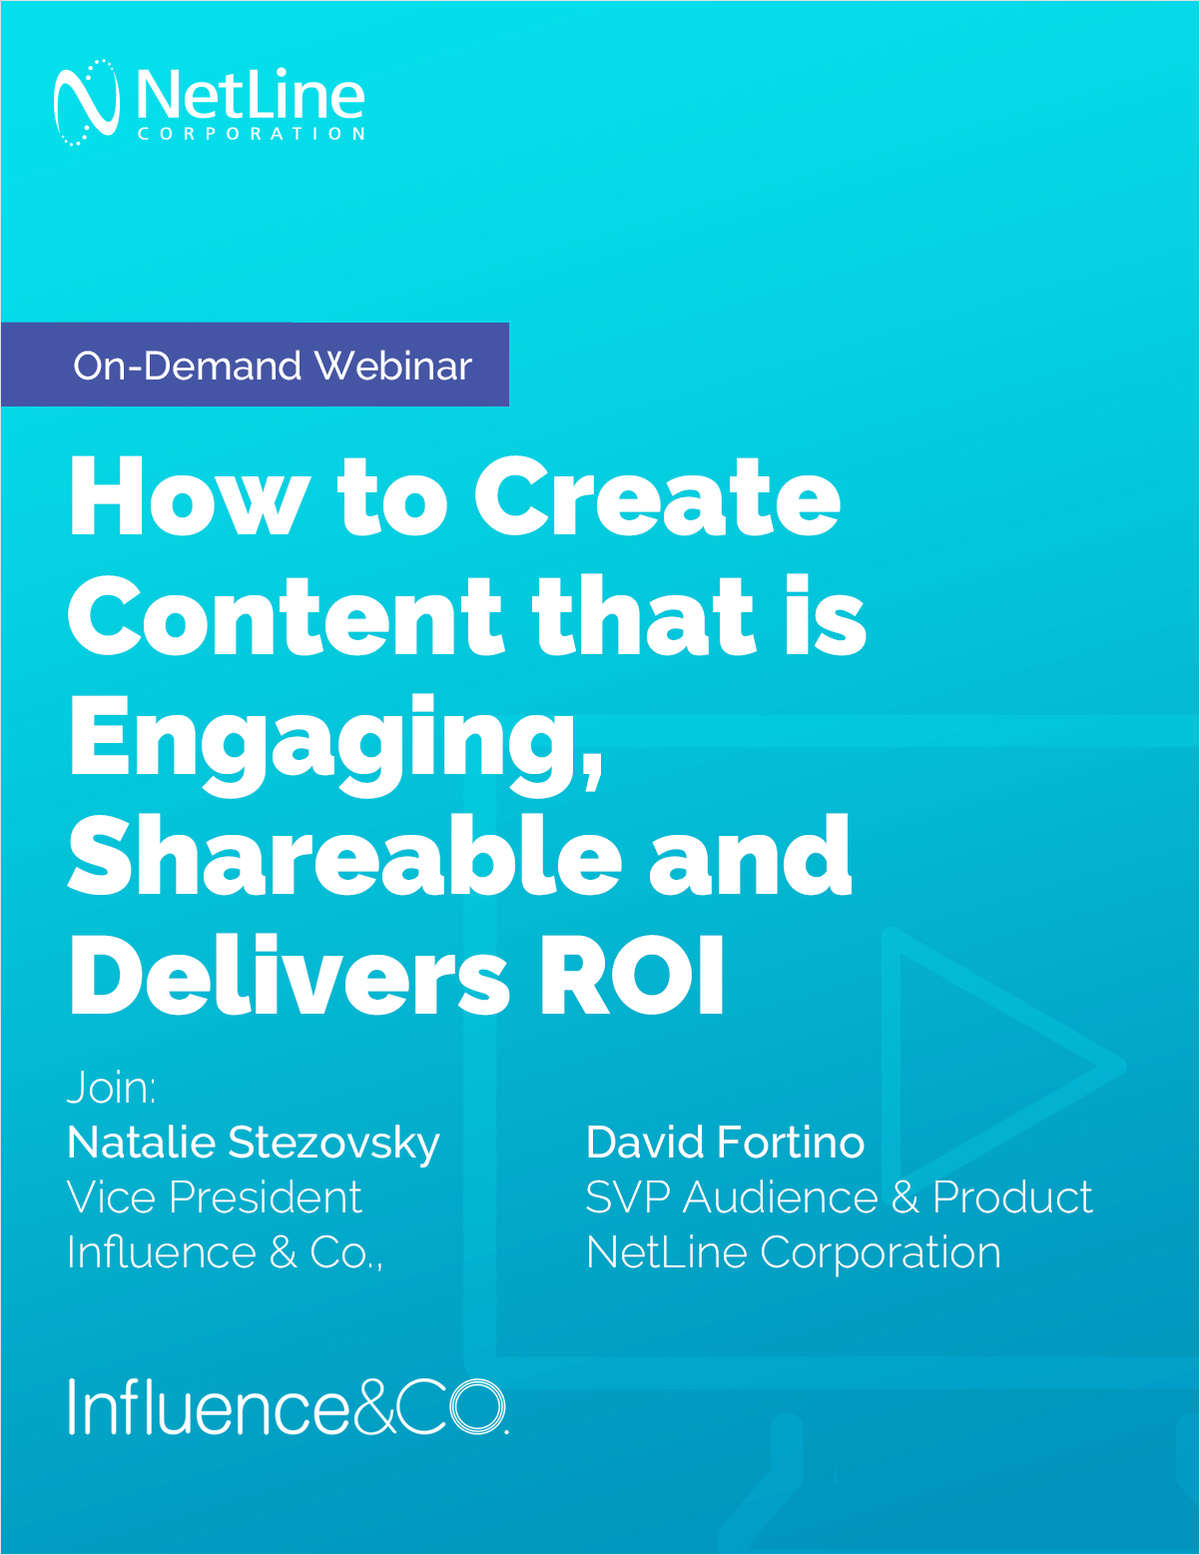 How to Create Content that is Engaging, Shareable and Delivers ROI